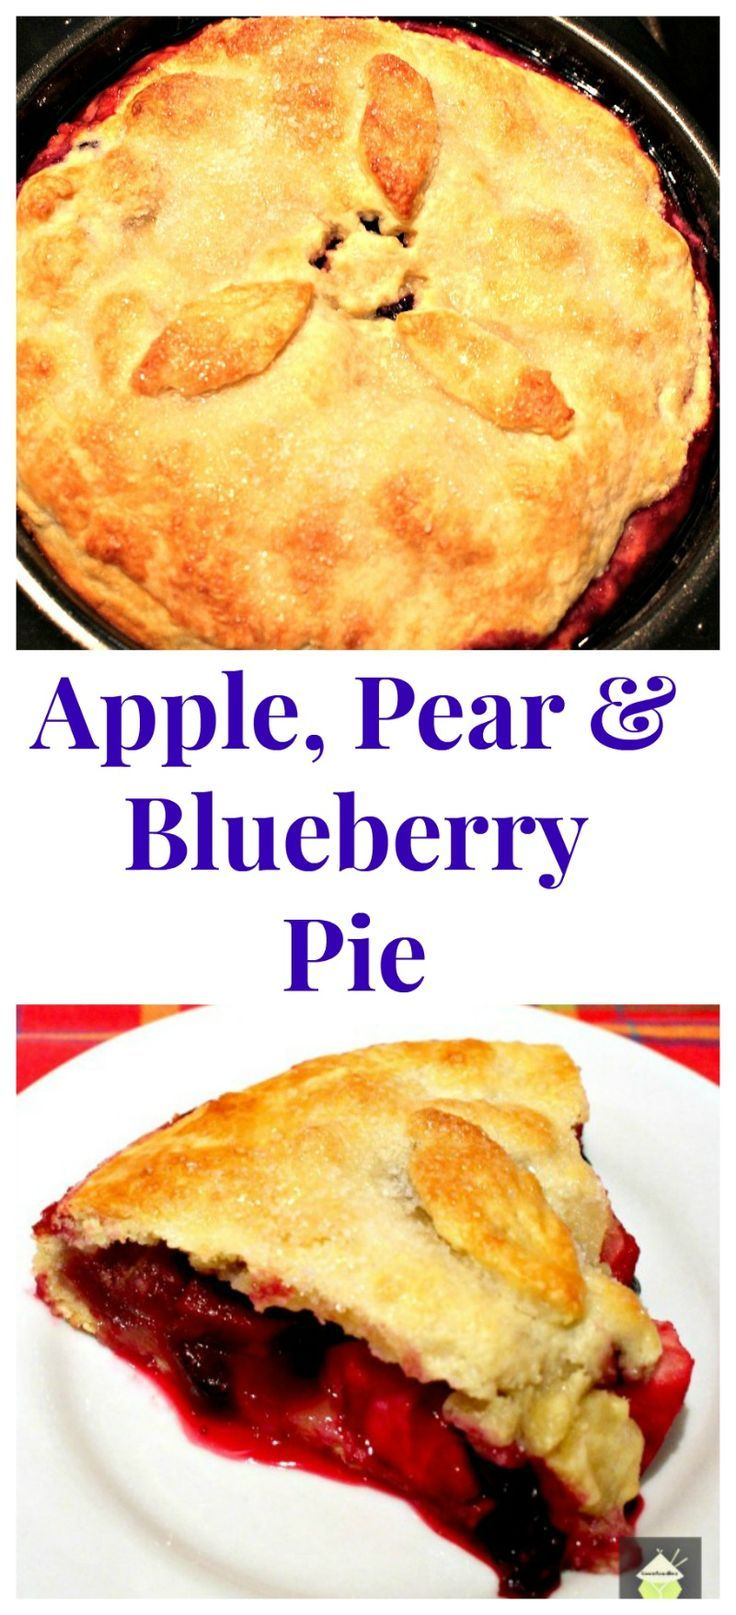 714 best images about delicious pie recipes on pinterest for Apple pear recipes easy